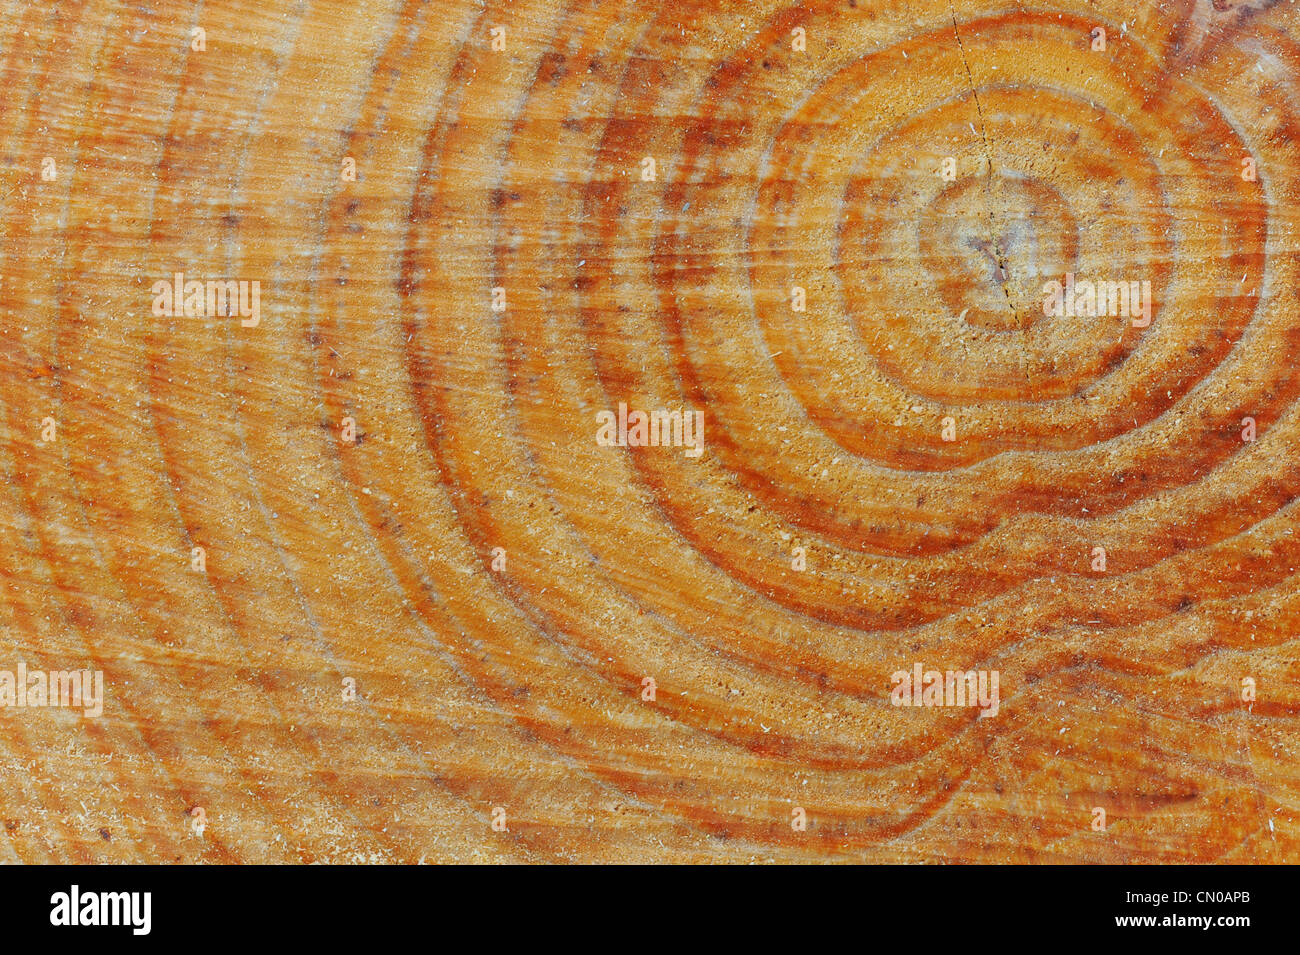 Tree rings. Sawn tree trunk pattern. - Stock Image